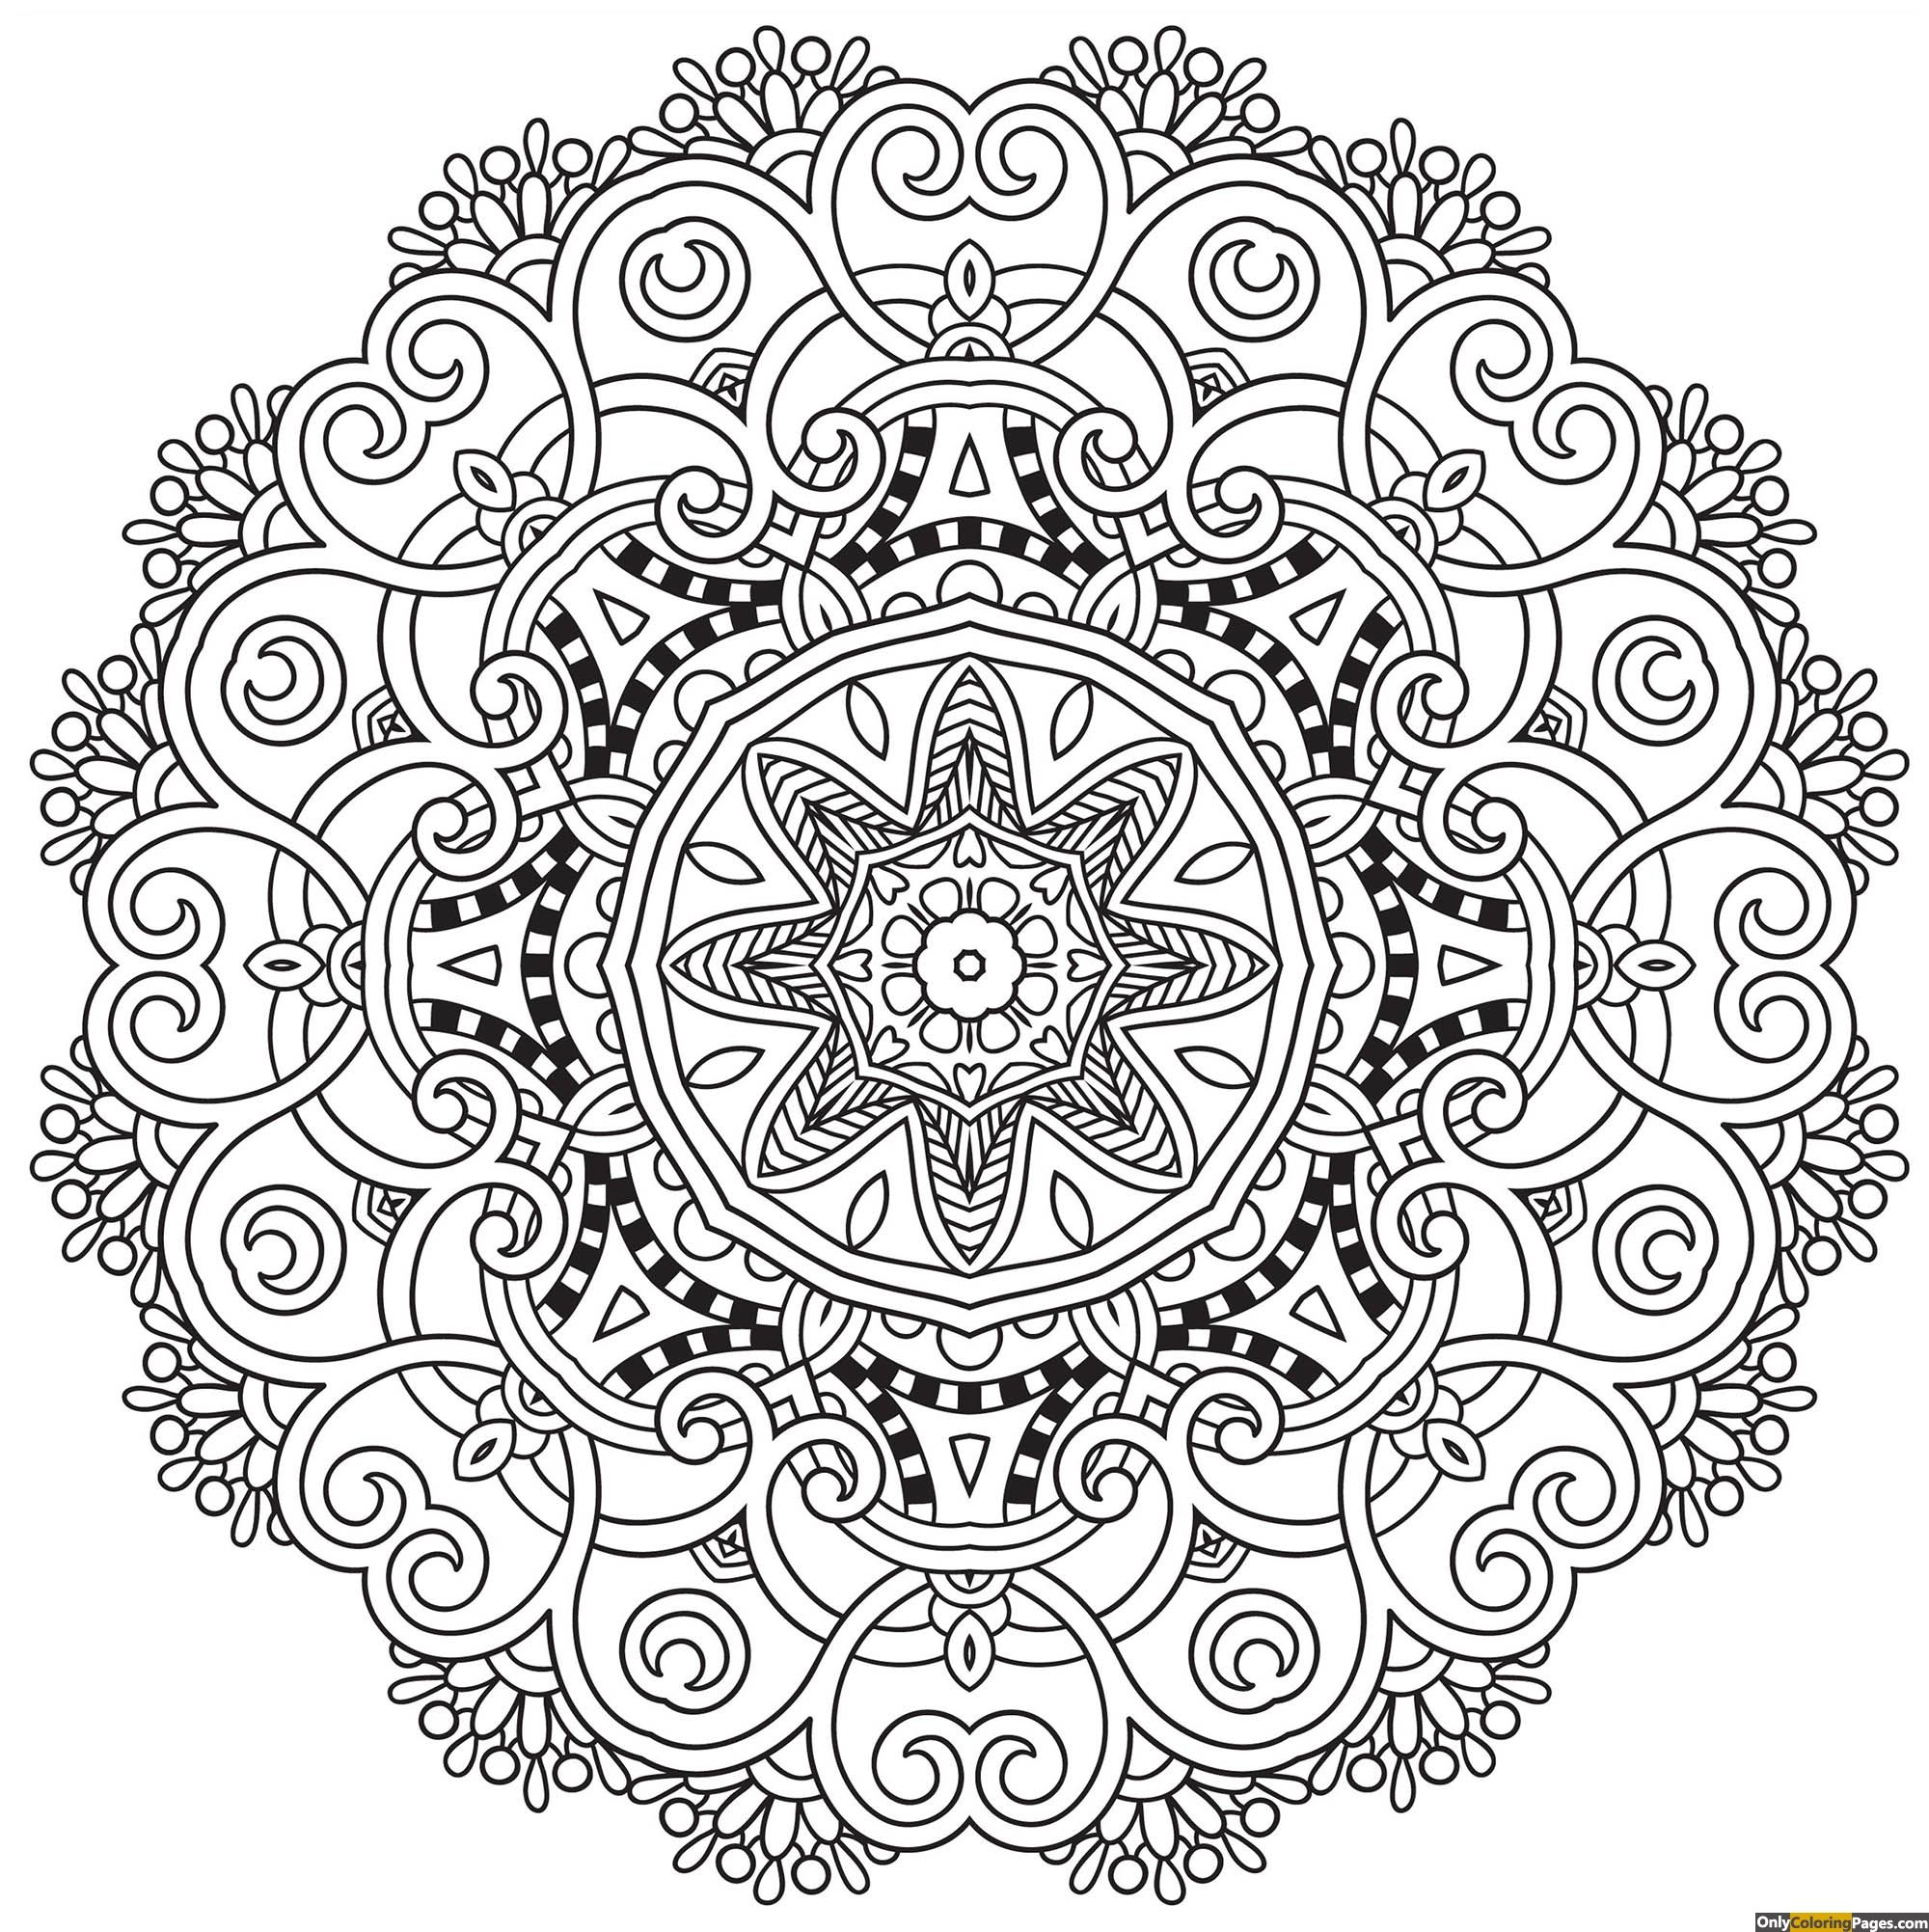 Clean Mandala Coloring Page